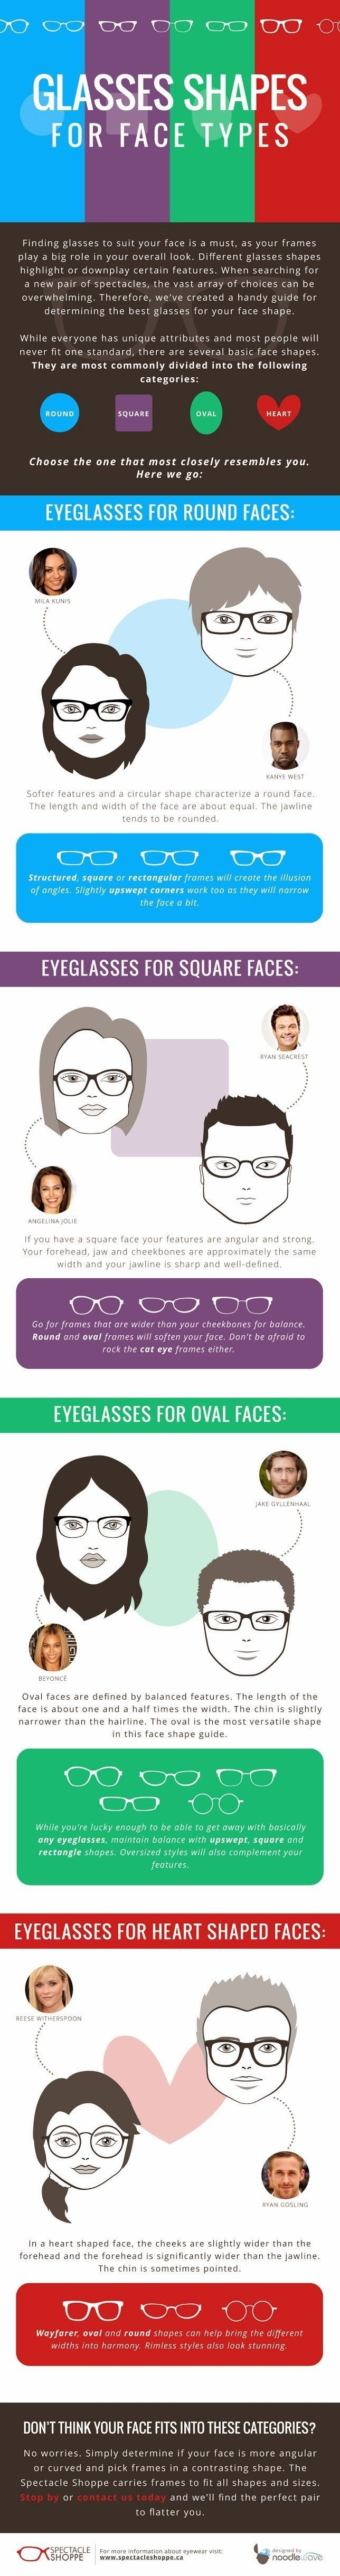 how to choose eyeglasses for face shape